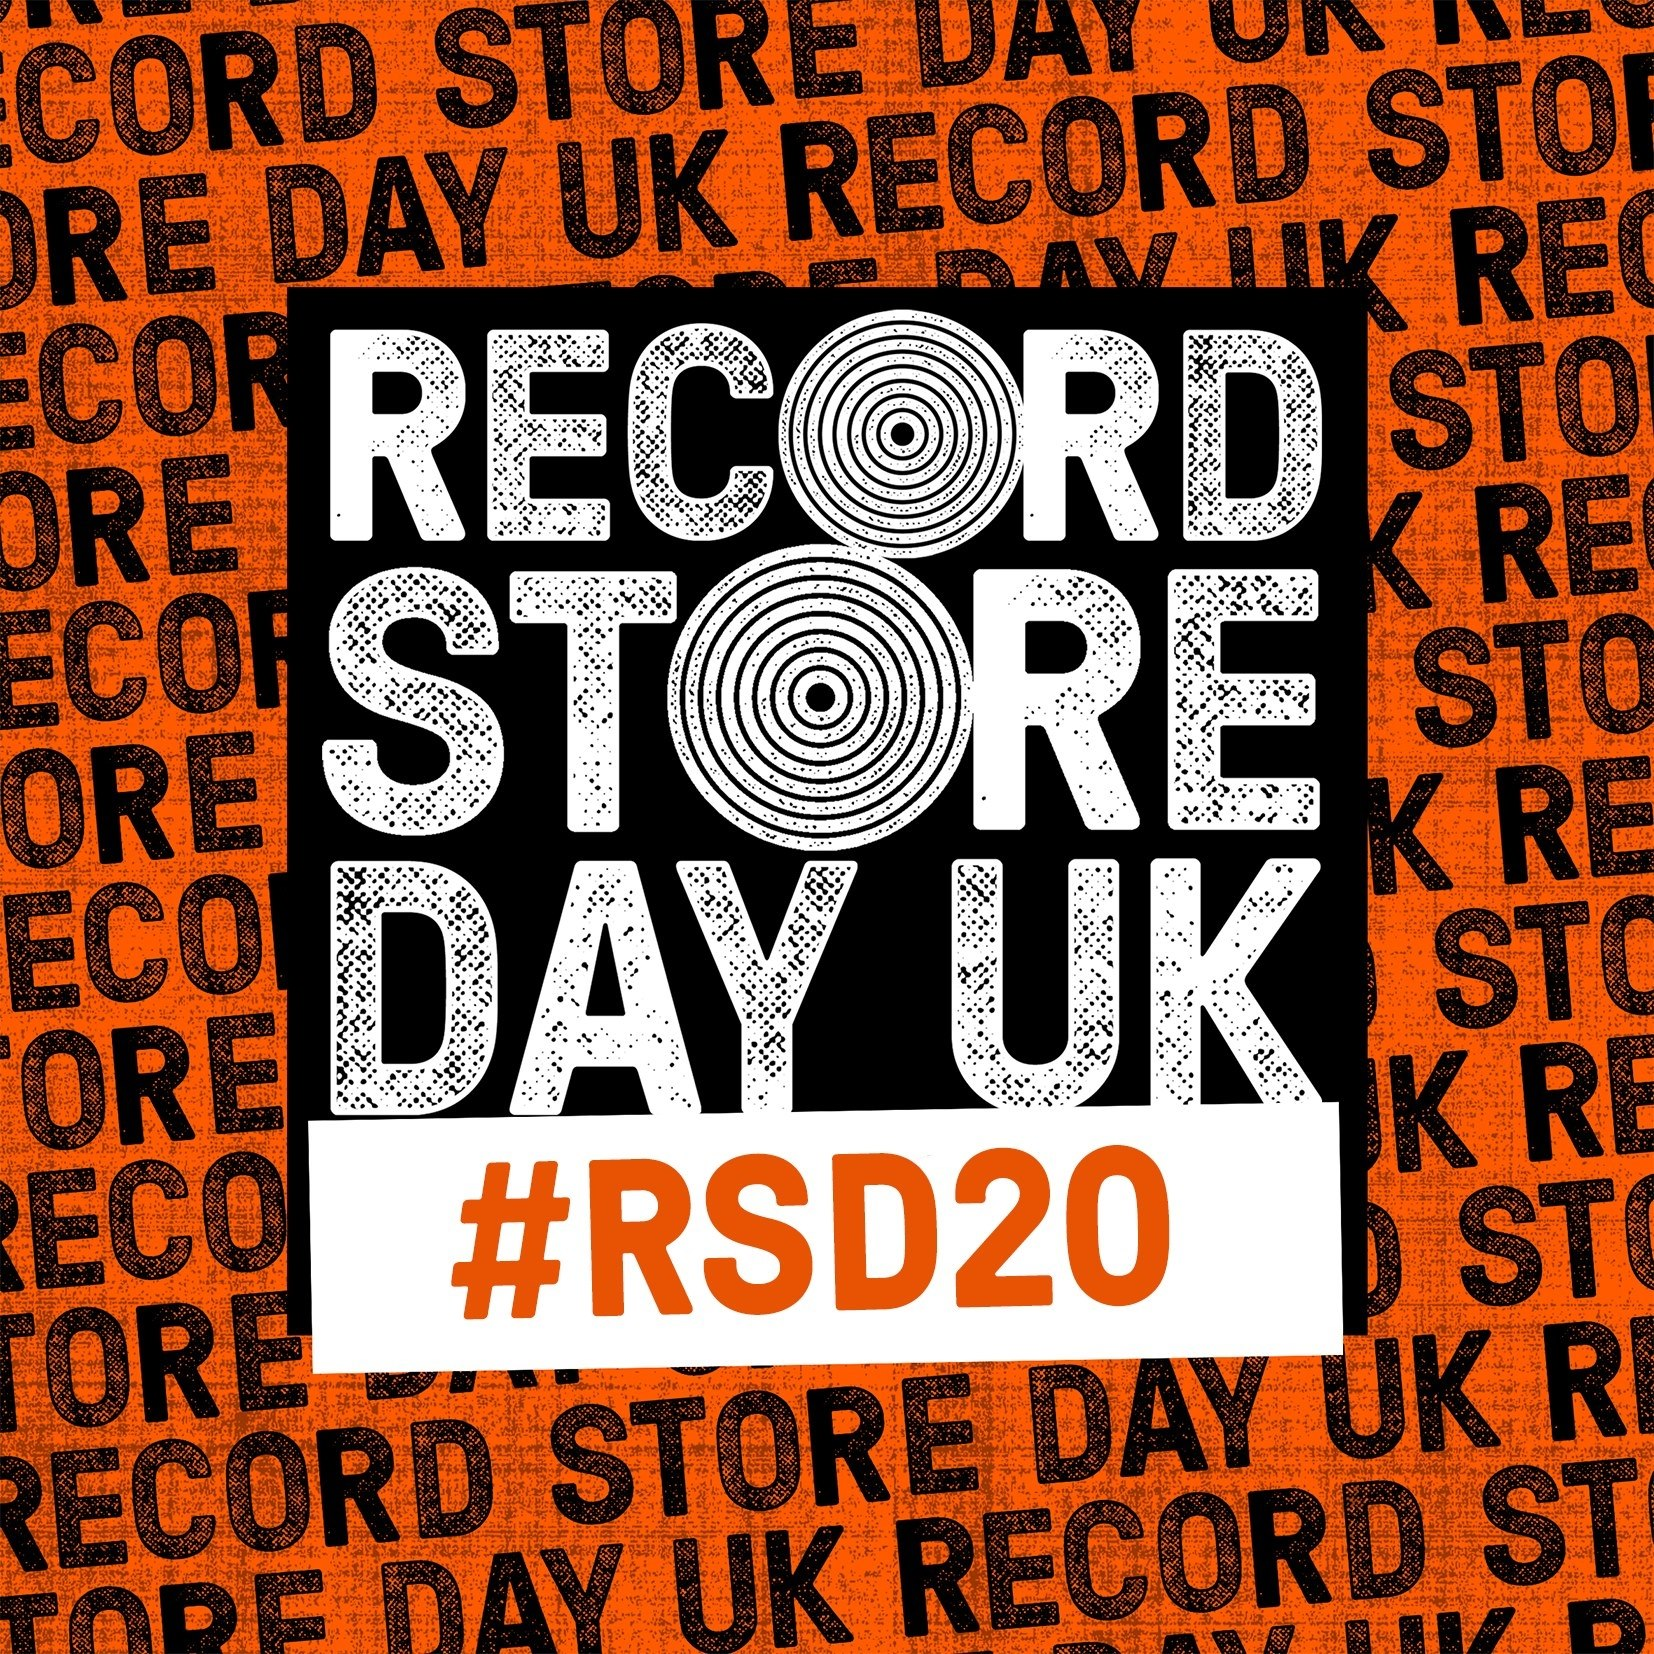 The Third Record Store Day Concludes the Successful 2020 Event Series